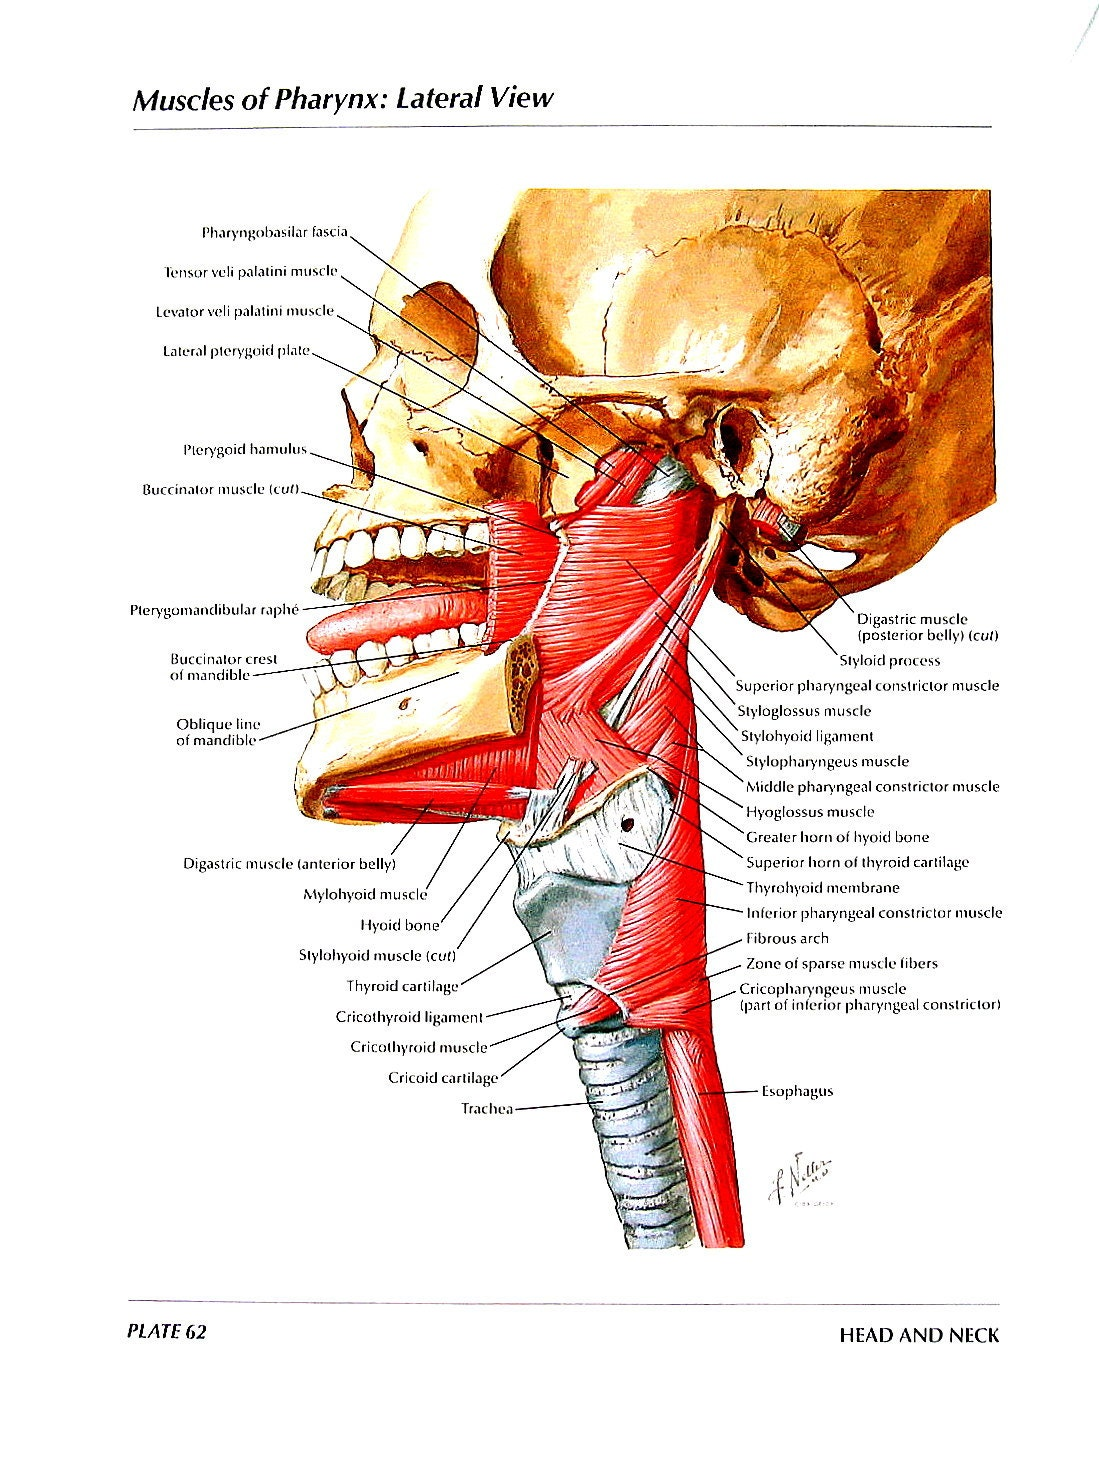 Anatomy Print Muscles of Pharynx Lateral View Posterior | Etsy